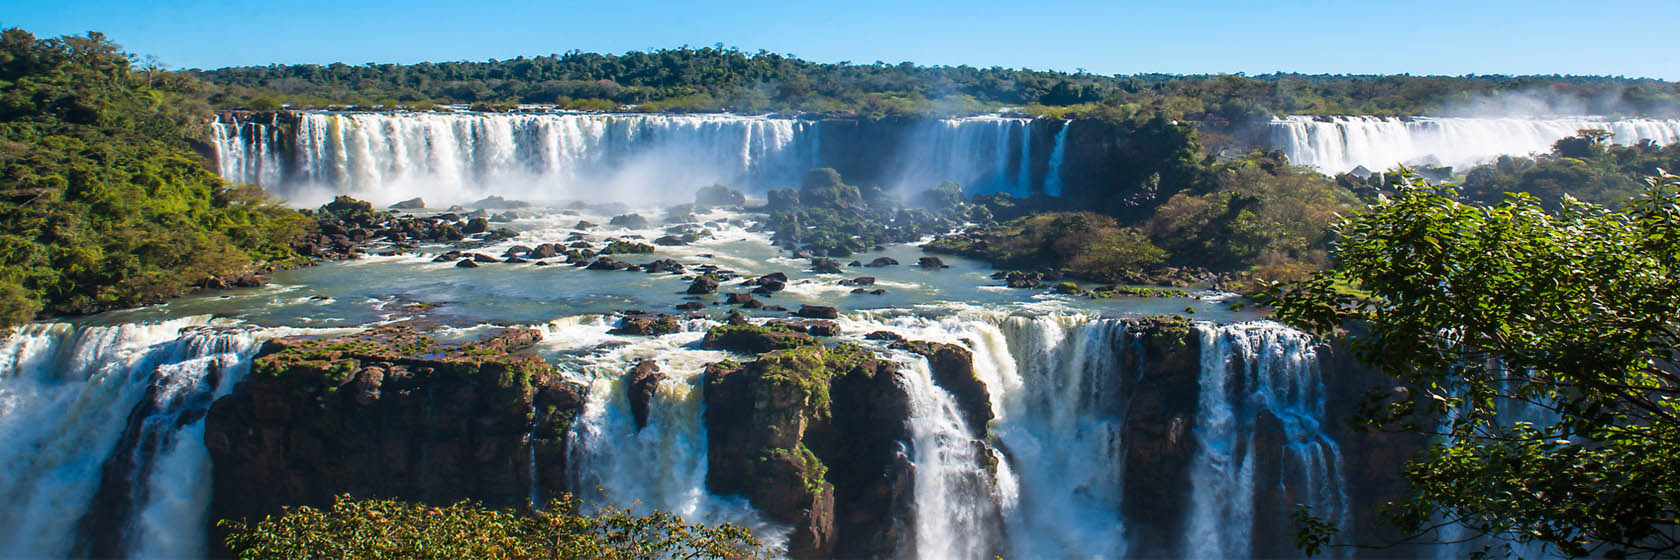 buenos-aires-to-brazil-13-days-with-abercrombie-and-kent-iguazzu-falls